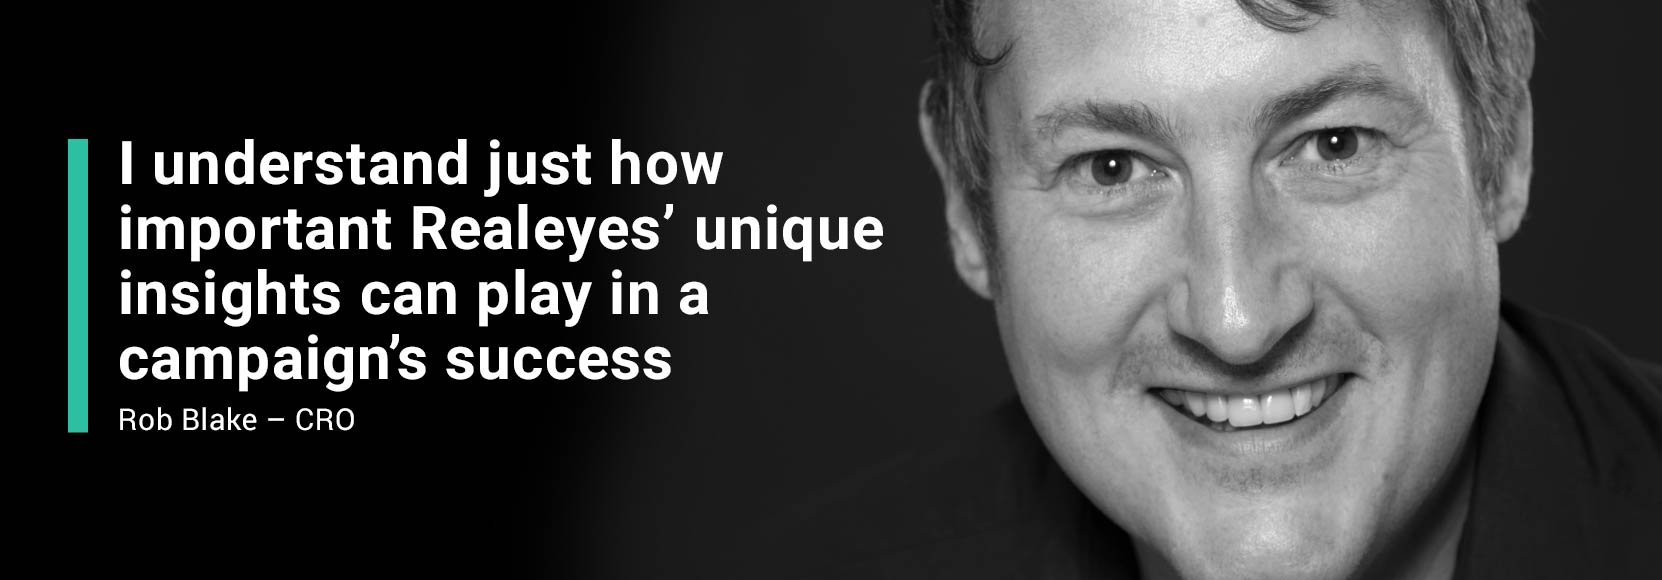 Former AOL And MediaMath Director Rob Blake Joins Emotion AI Pioneers Realeyes As CRO